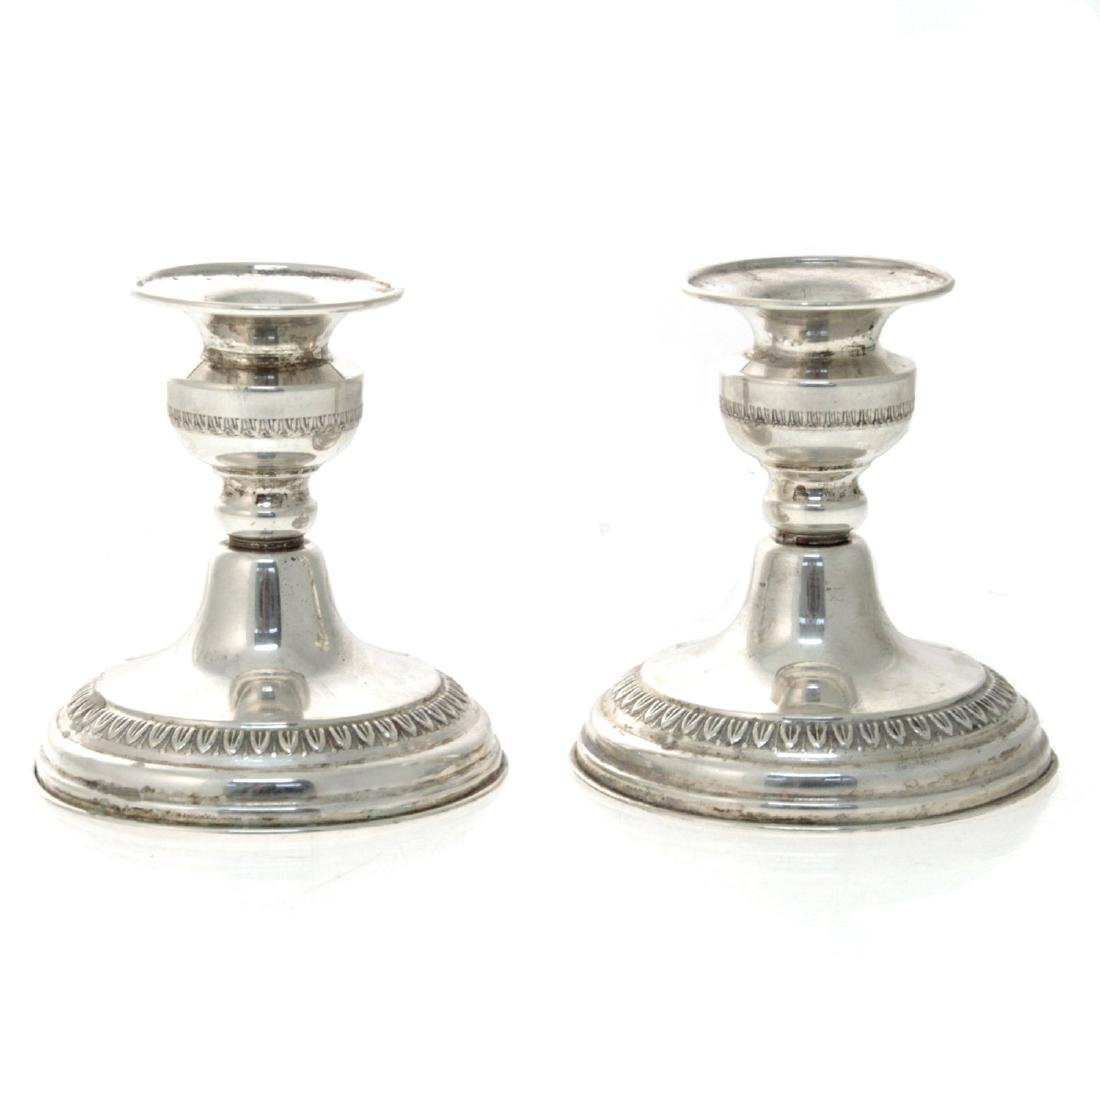 Pair of Sterling Silver Dwarf Candlesticks.